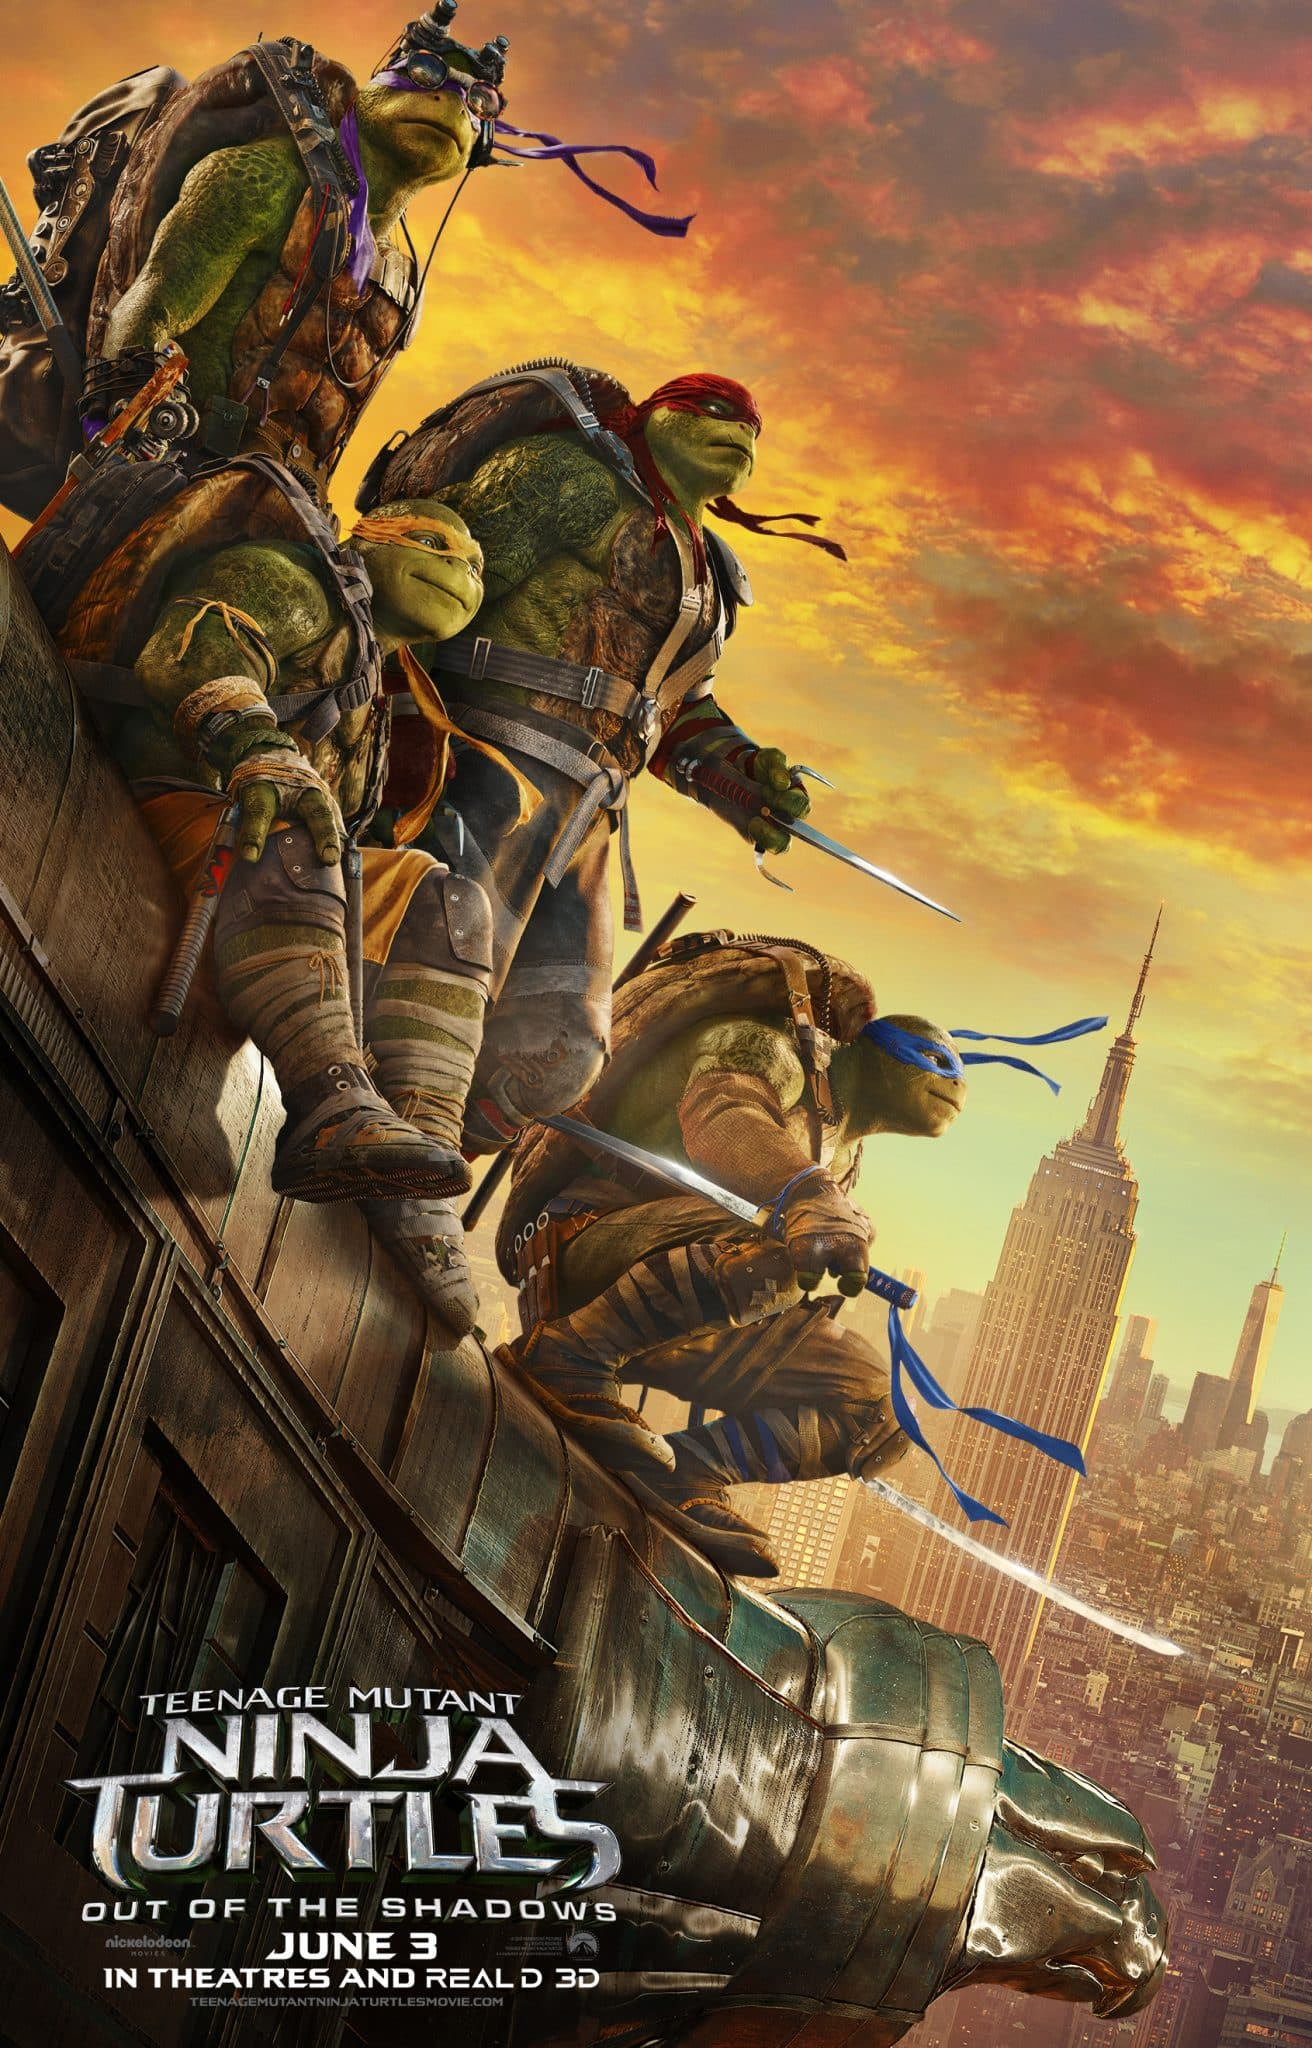 TMNT: Out of the Shadows in Theaters #TMNT2